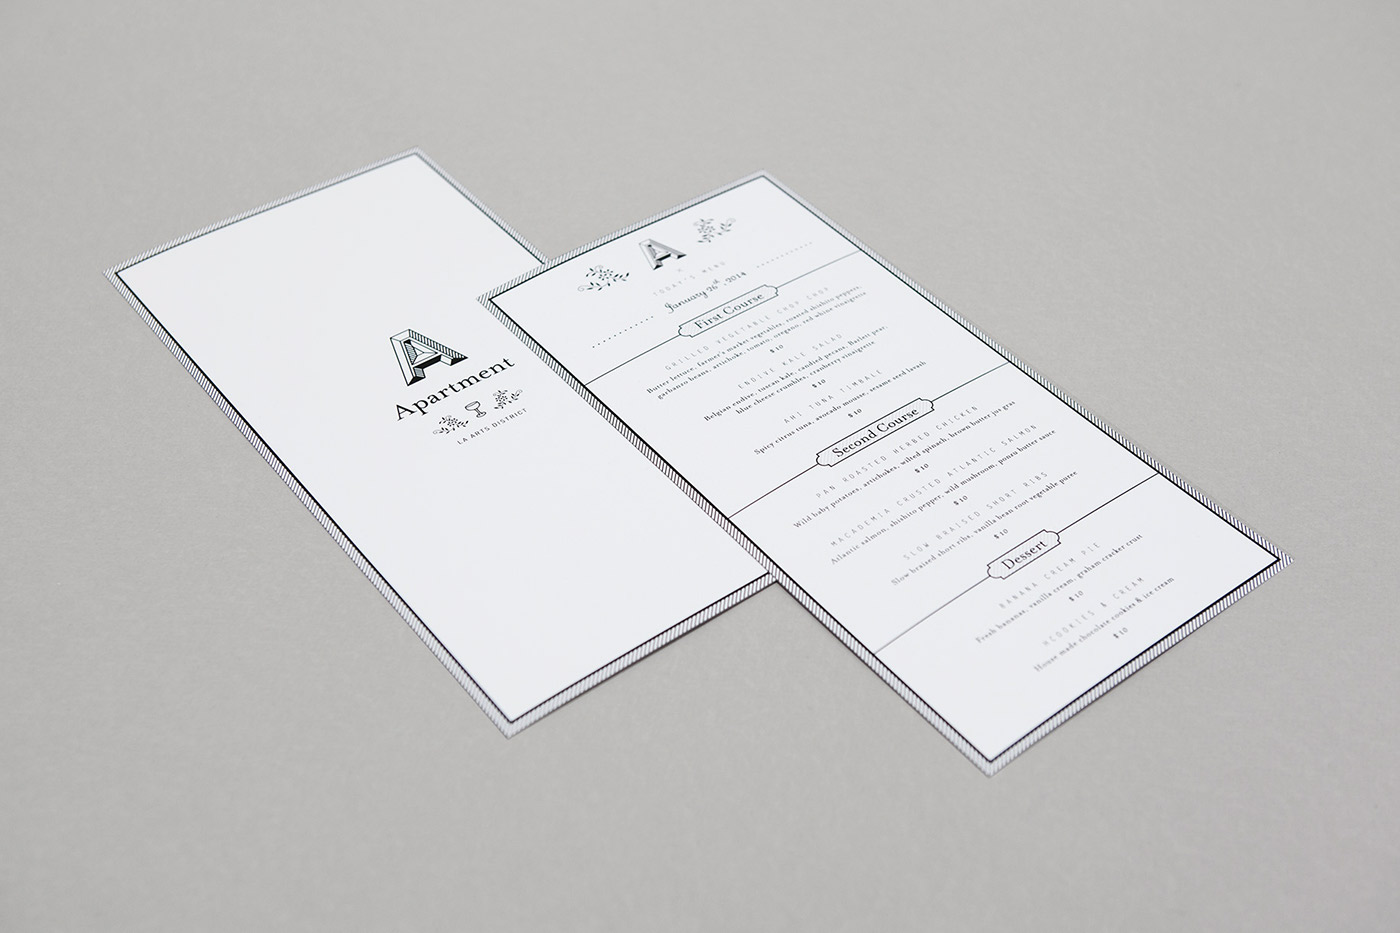 apartment a Los Angeles menu cards Business Cards say what studio